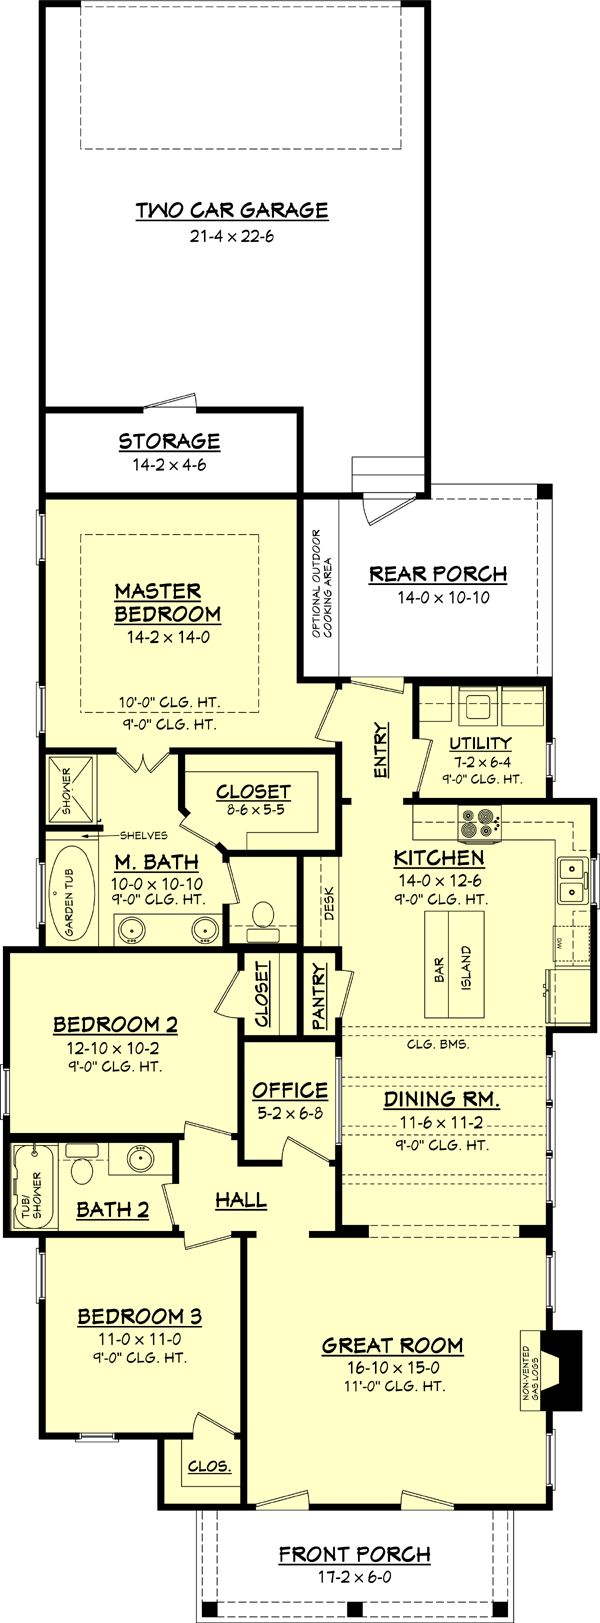 25 best cottage style houses ideas on pinterest cottage style cottage style house plan 3 beds 2 baths 1550 sq ft plan floor plan add a bathroom for bedroom